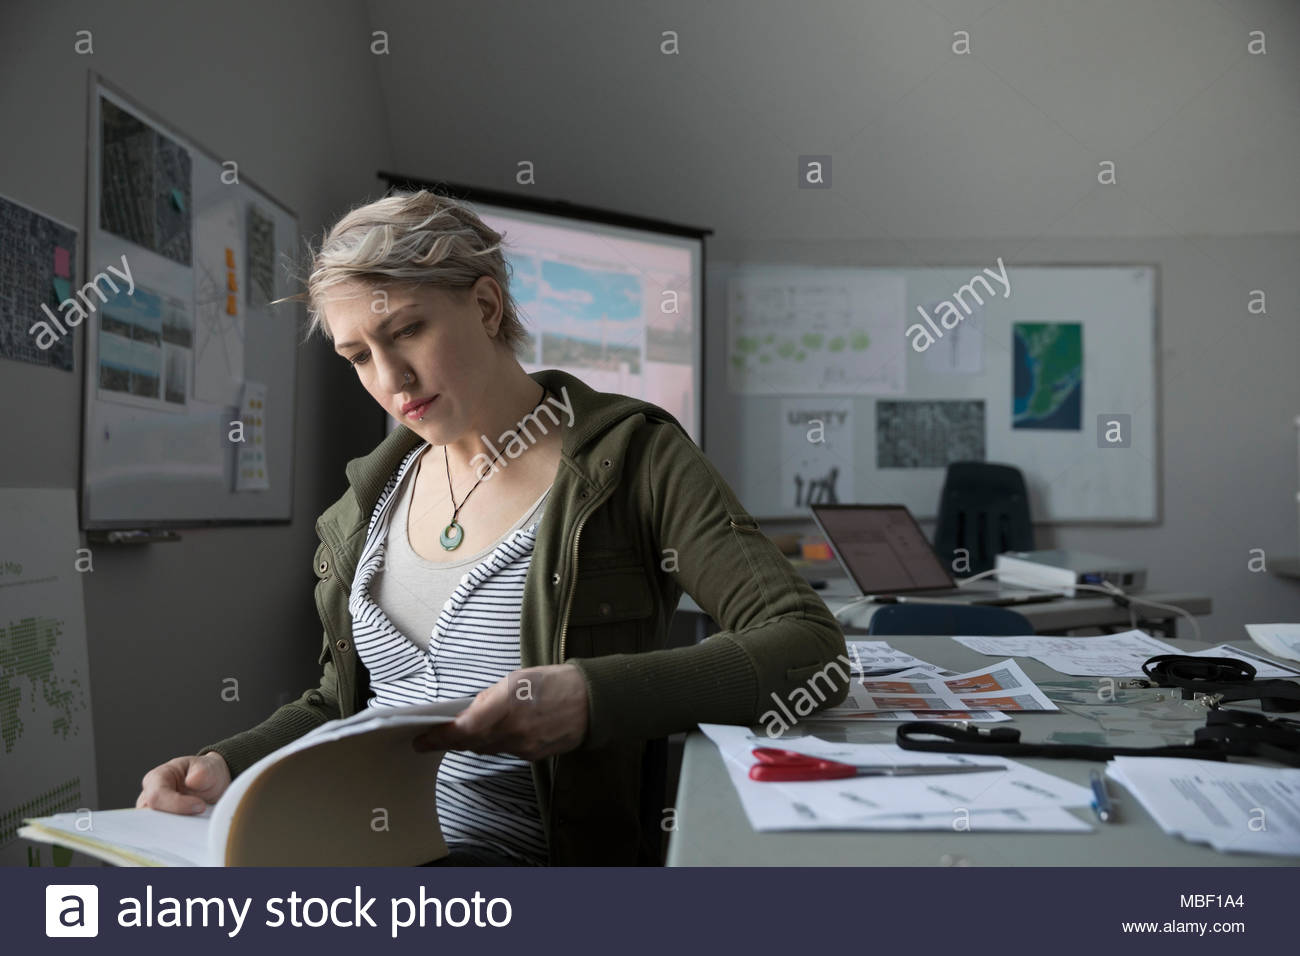 Focused female city planner working in office, reading paperwork - Stock Image